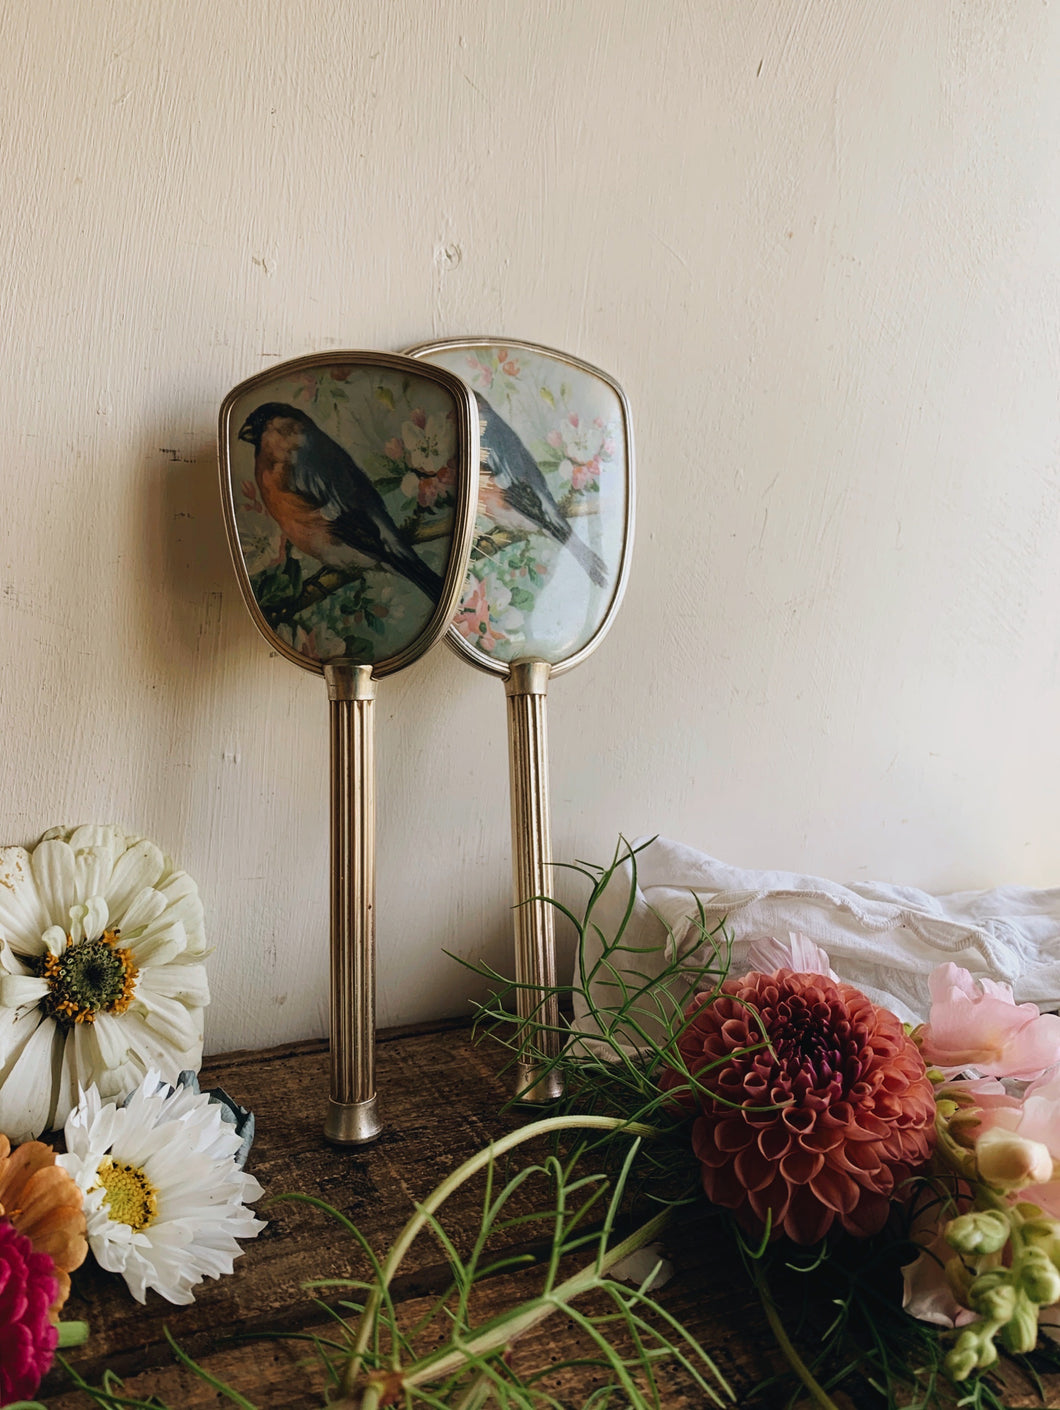 Vintage Bird Vanity ~ Mirror & Brush Set